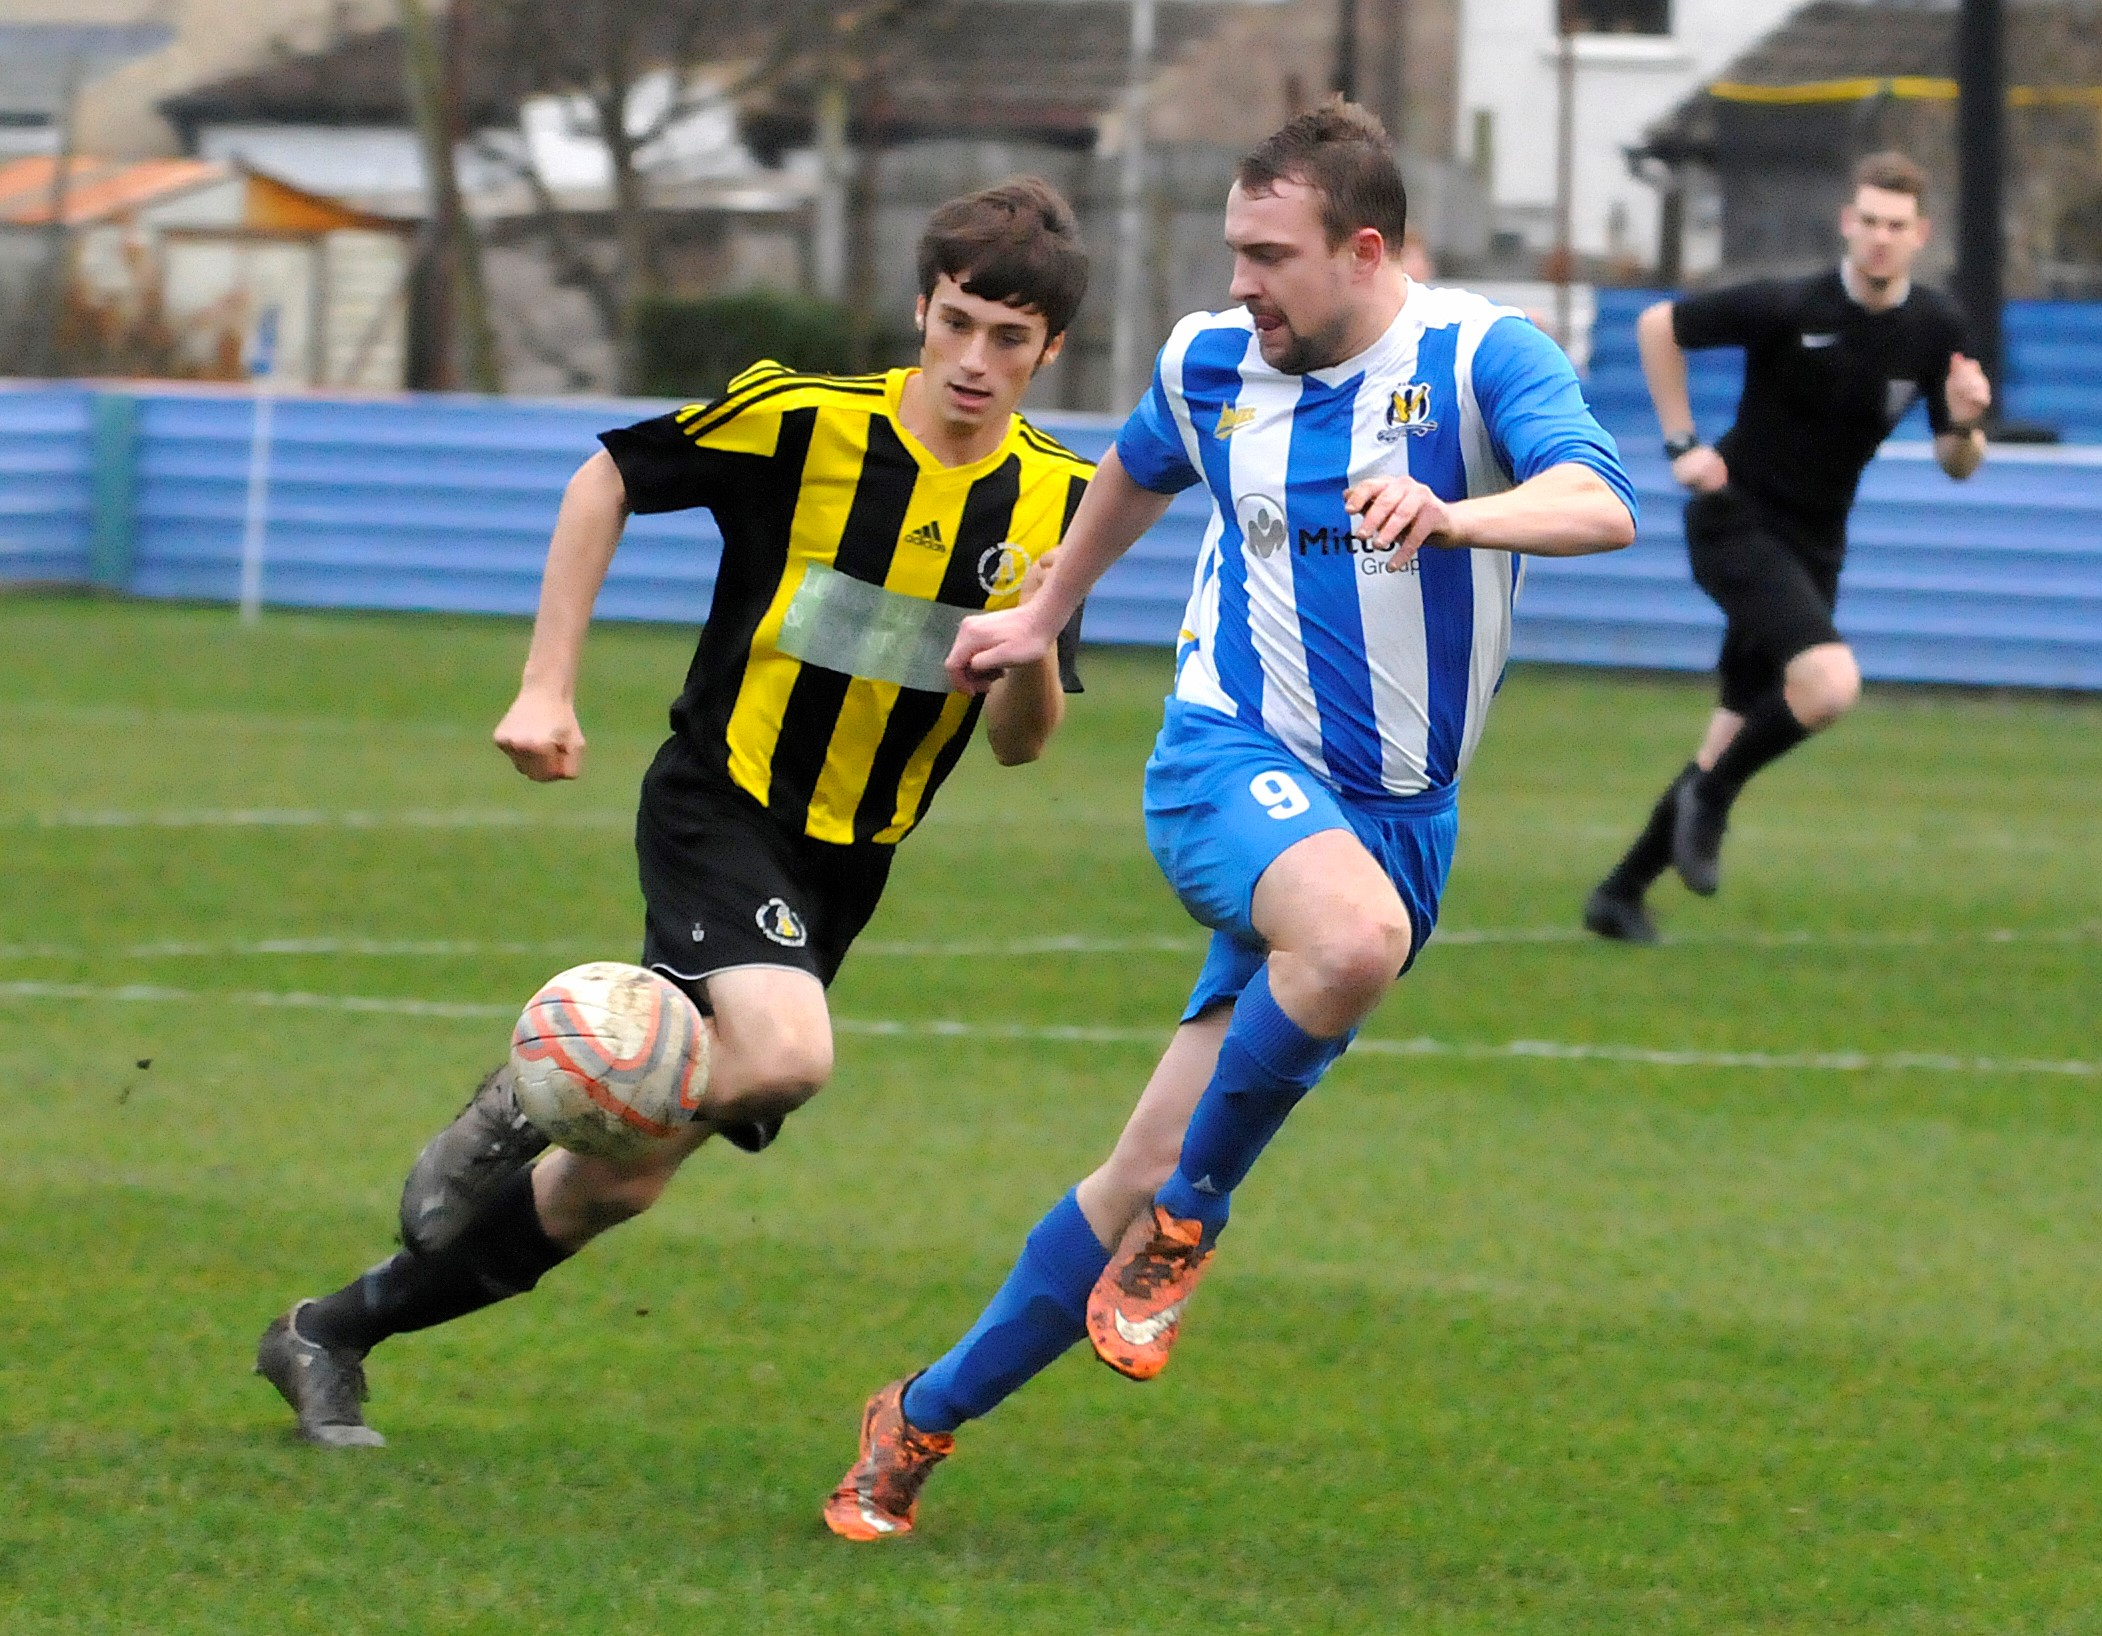 Luke Harrop, right, scored twice for Eccleshill United on the opening day of the season against Yorkshire Amateur